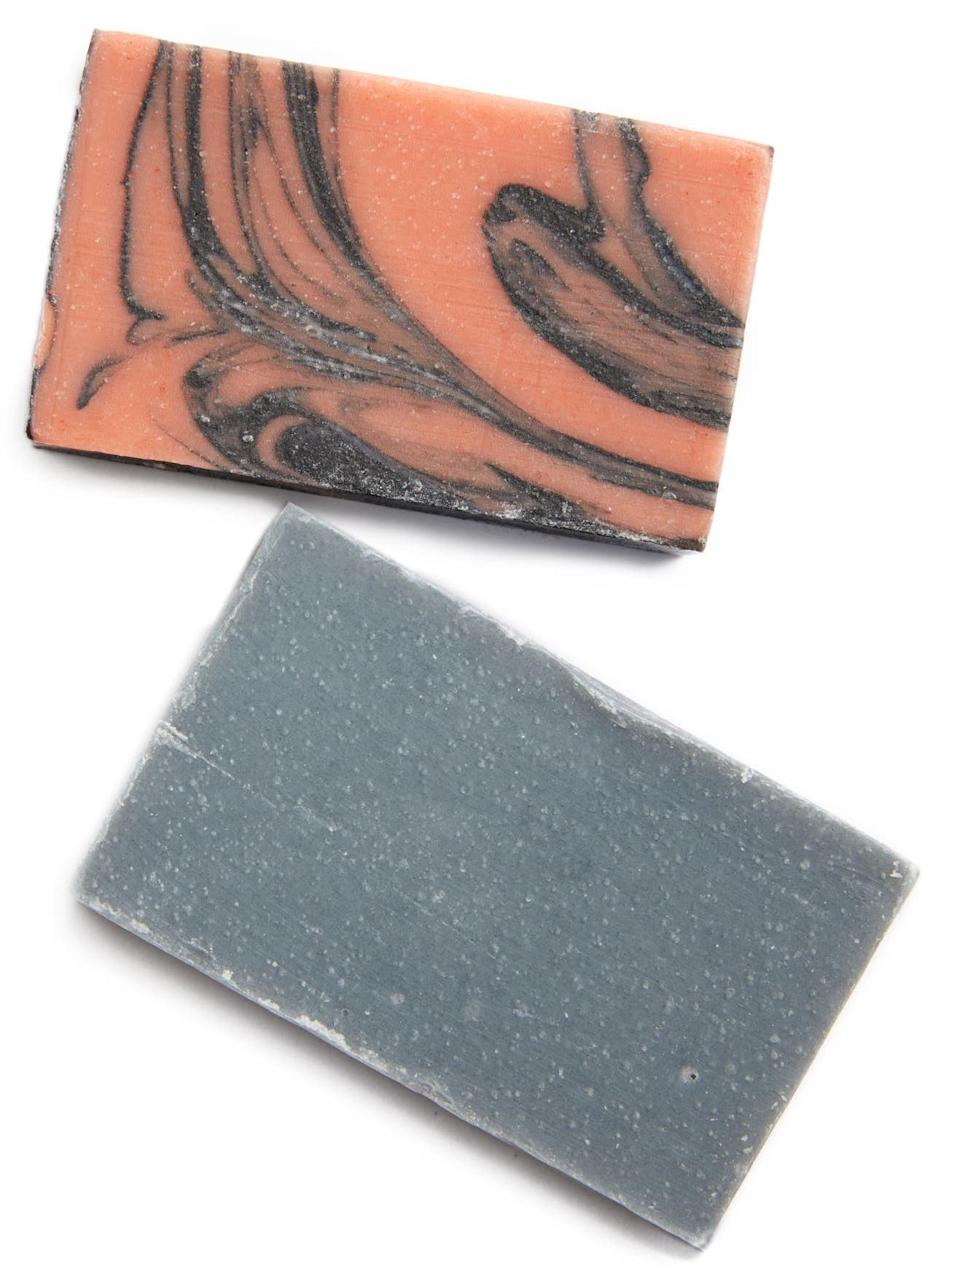 Rose Charcoal Face Soap Bar & Charcoal Soap Bar Set. Image via Nordstrom.